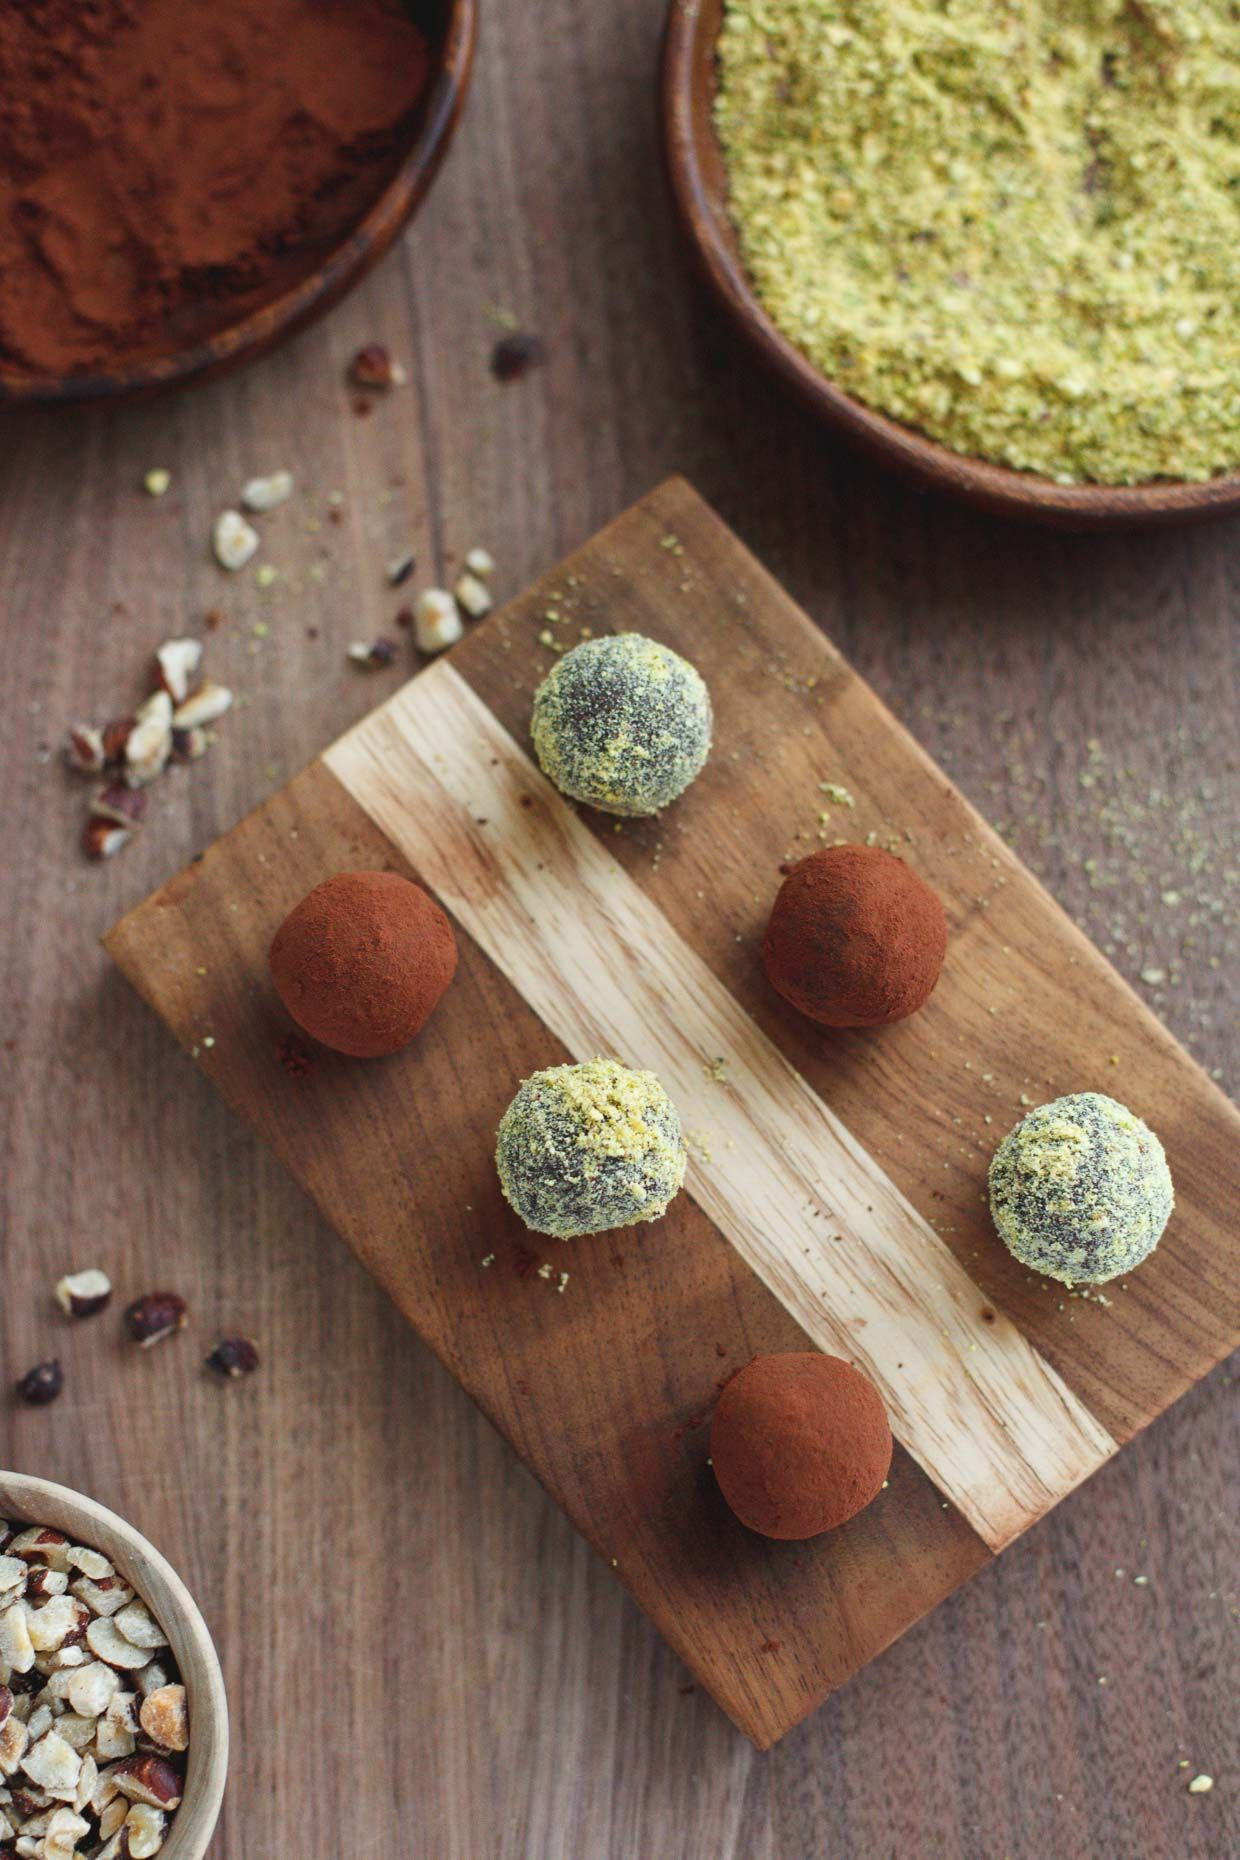 Healthy Nutella and Pistachio Truffles & A (free!) Recipe Book Download #holidayrecipes #sproutbyhp #CIY